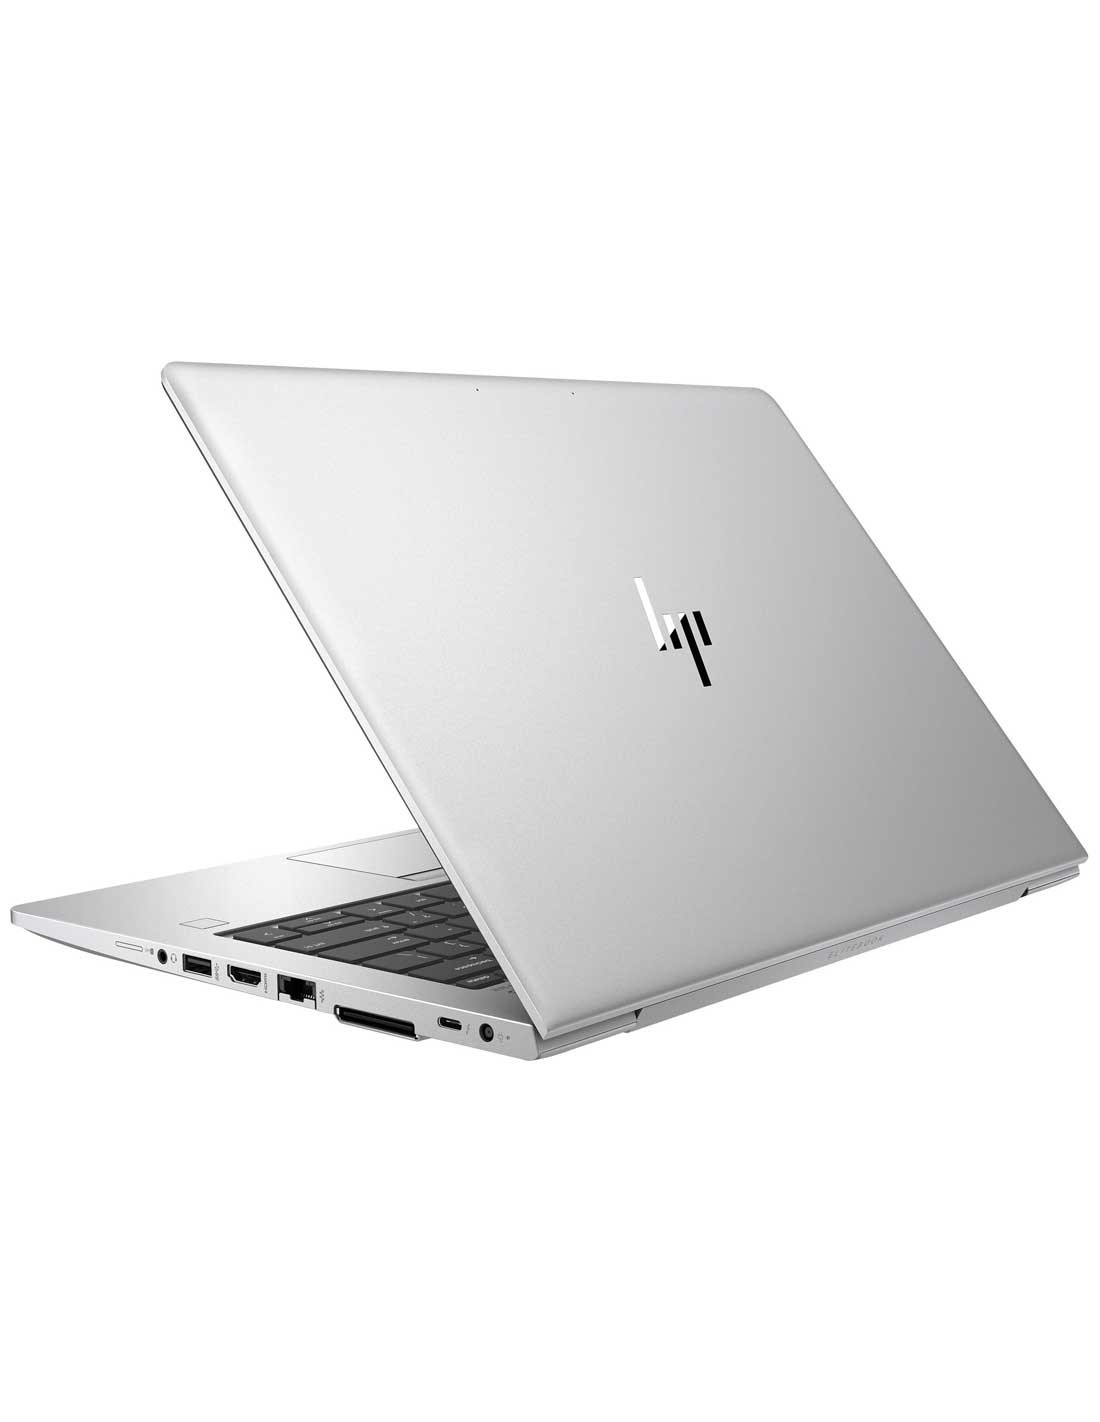 HP EliteBook 830 G5 Notebook images and photos